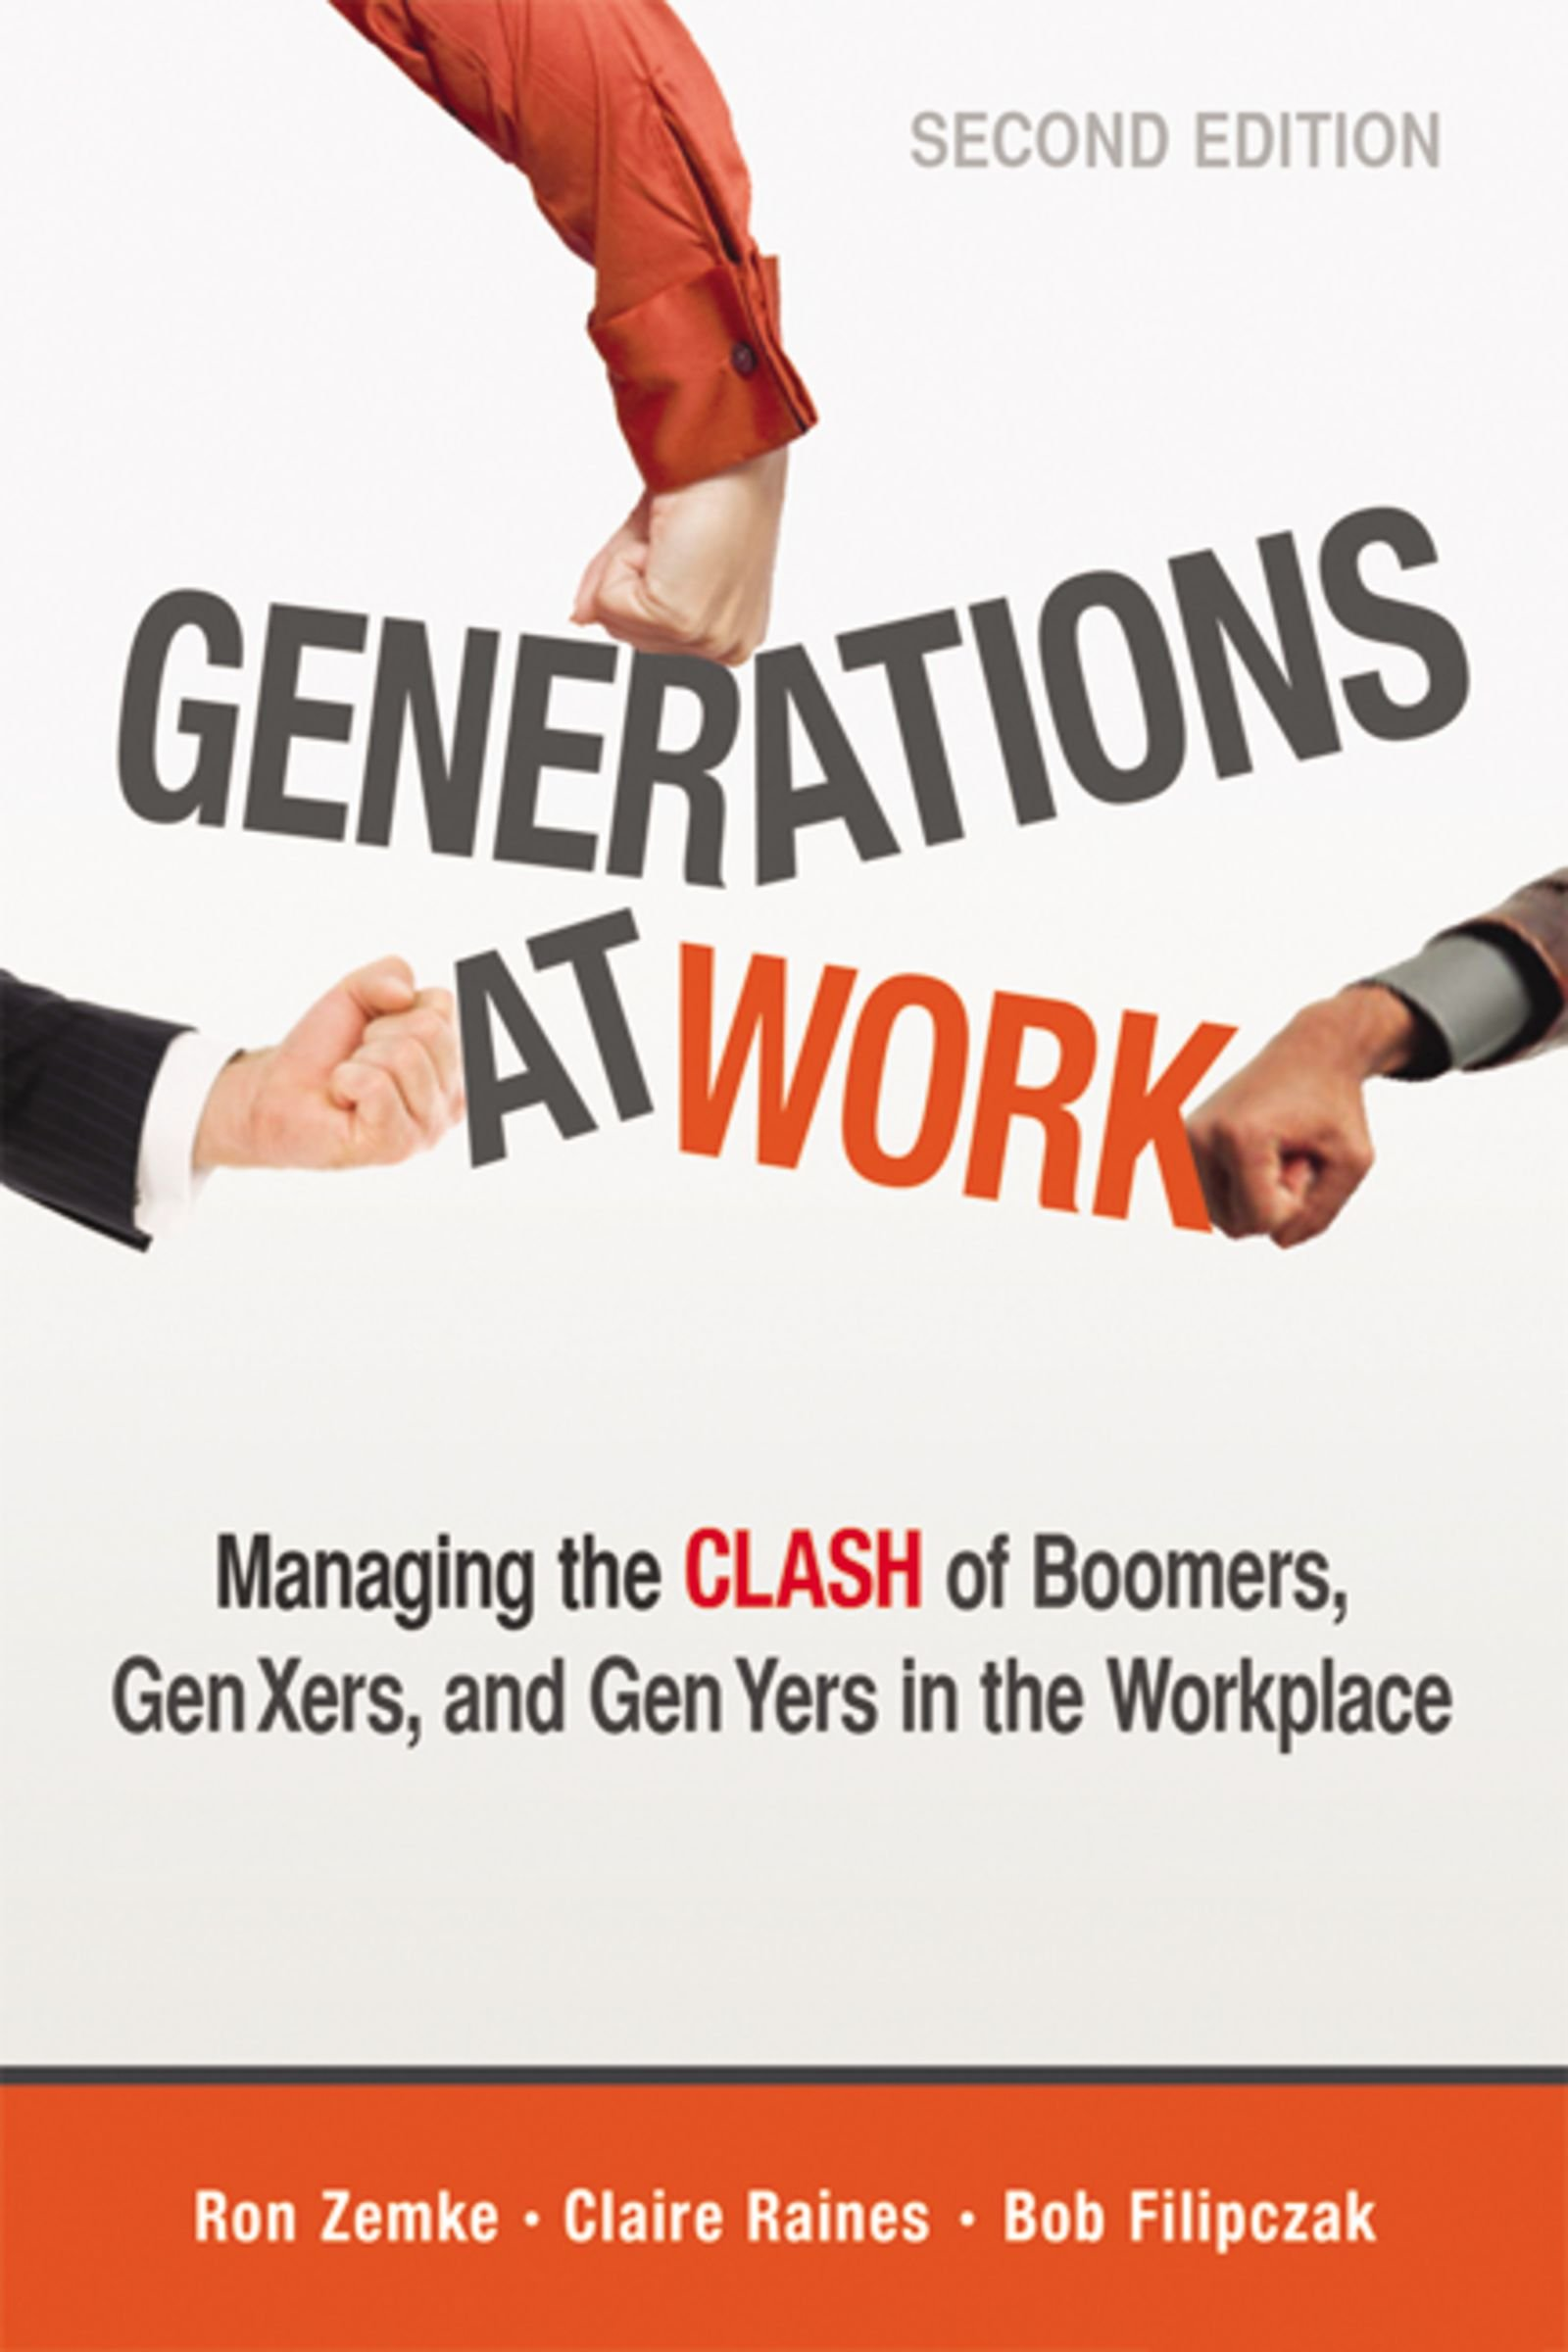 Generations at Work: Managing the Clash of Boomers, Gen Xers, and Gen Yers  in the Workplace: Ron Zemke, Claire Raines, Bob Filipczak: 9780814432334:  ...